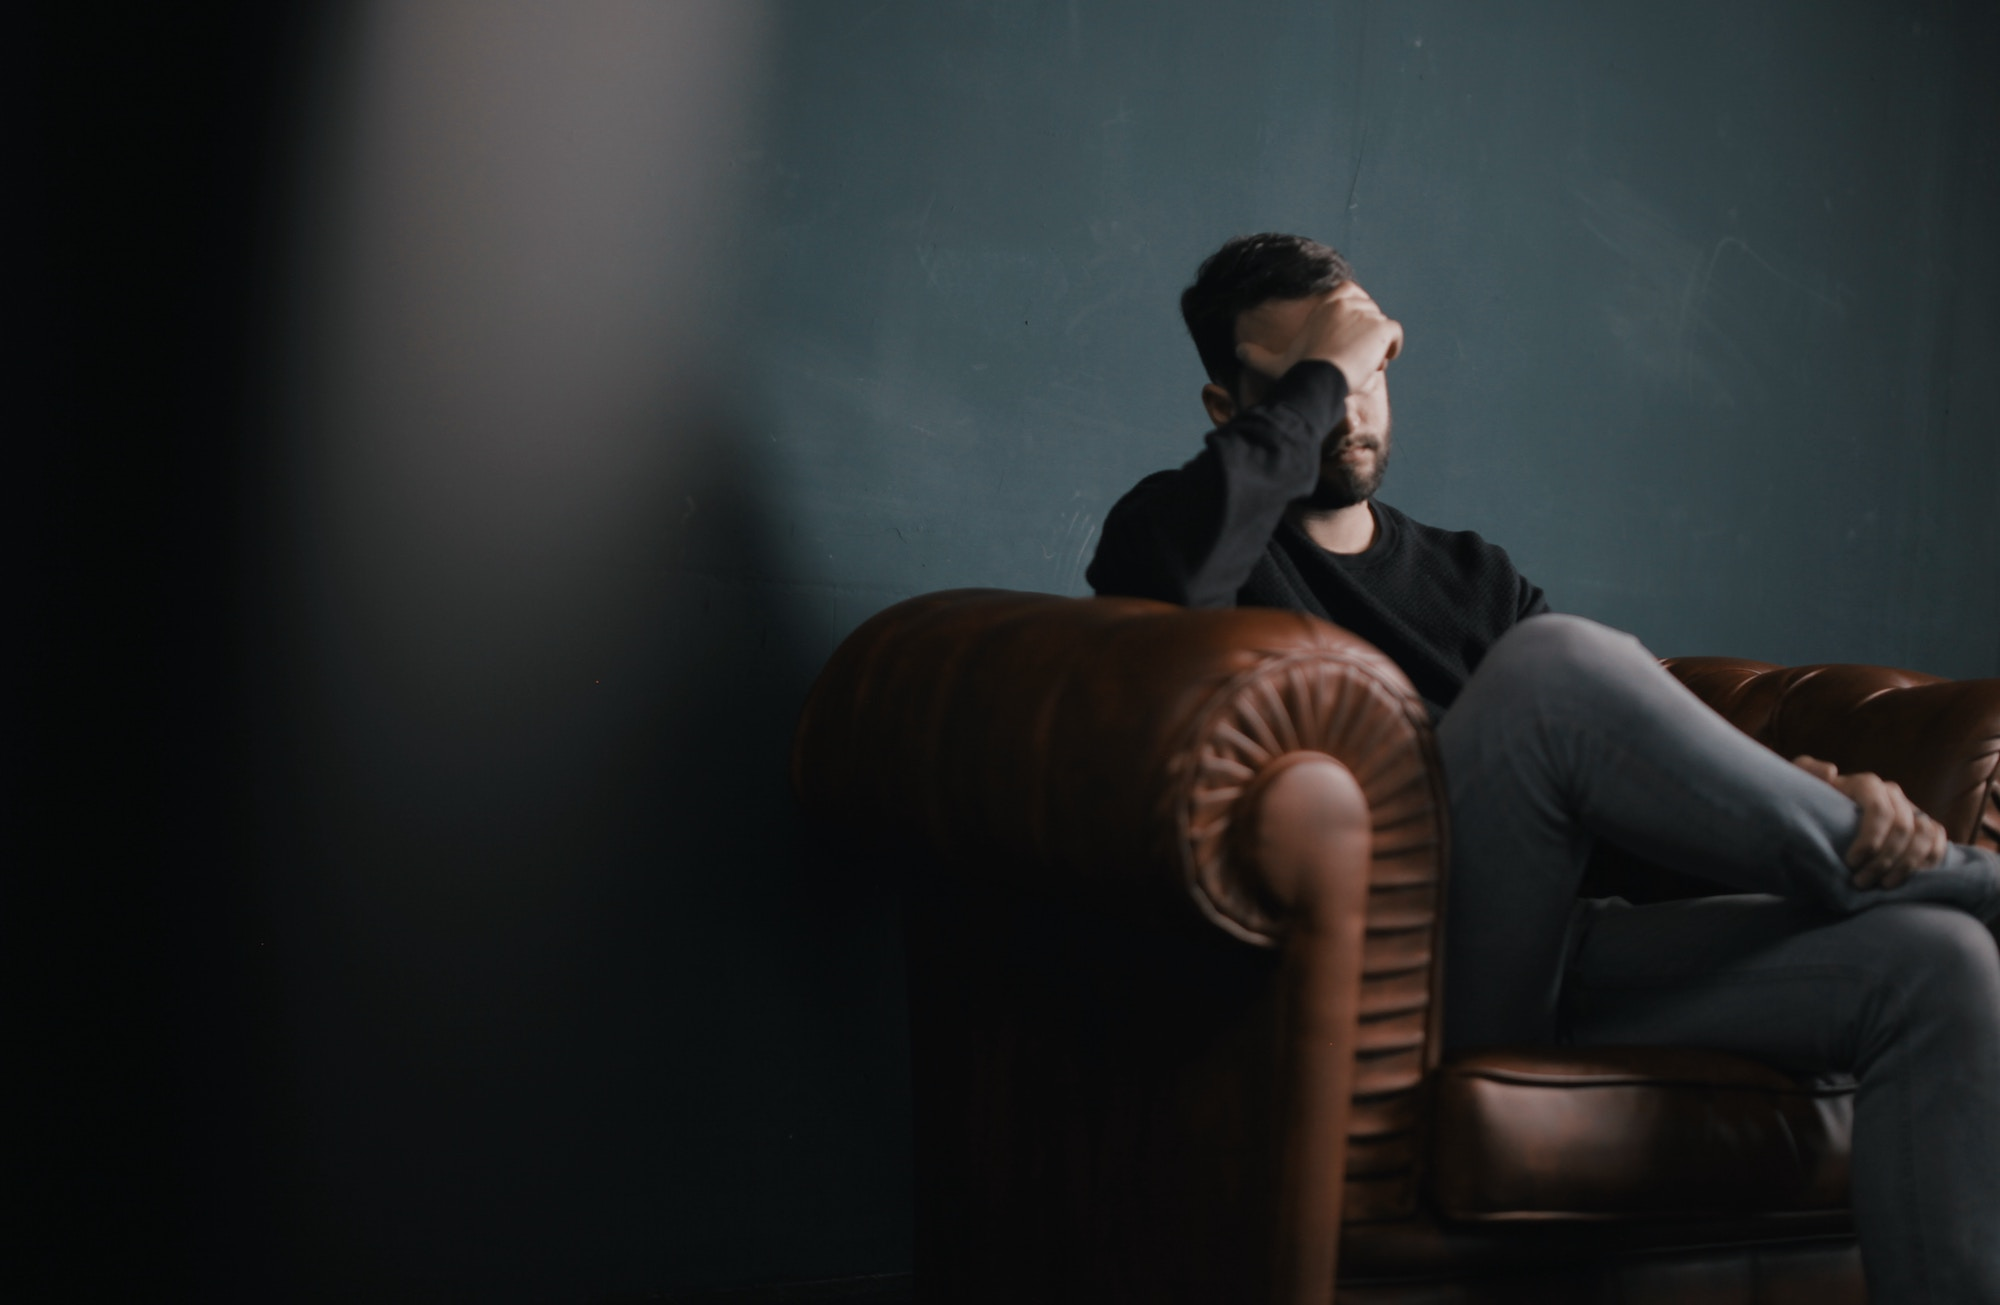 Thumb image for the post on Five Essential Tips to Overcome Shame and Guilt during Drug Addiction Recovery